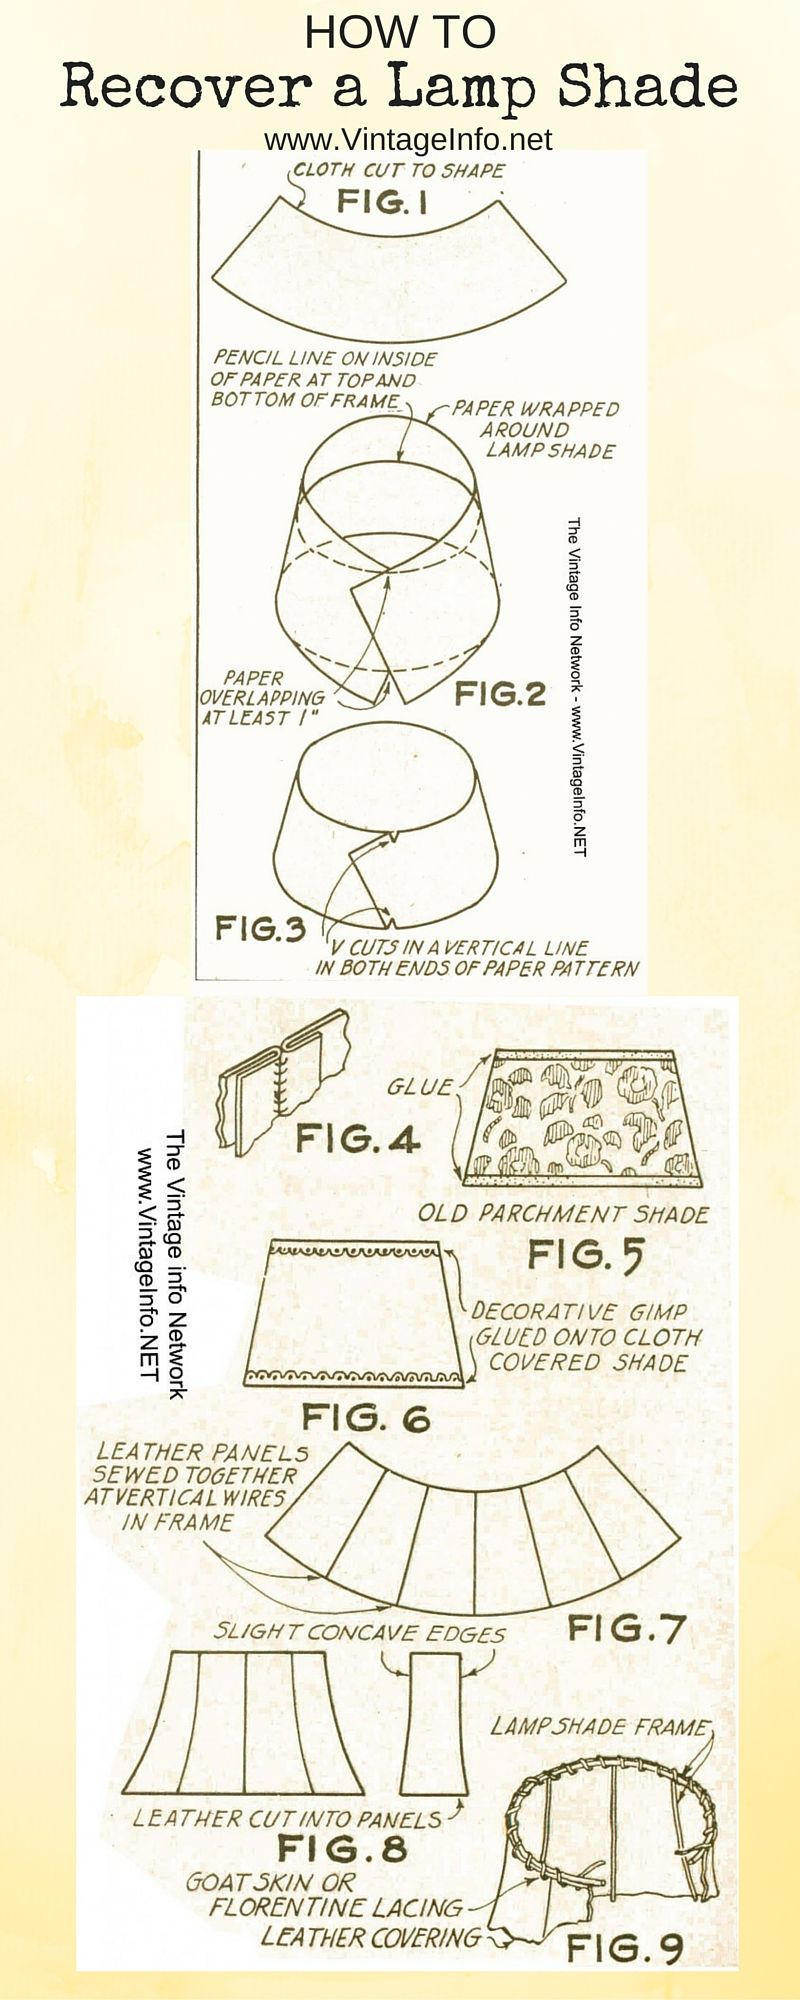 How To Recover a Lamp Shade | Vintage diy, Vintage and ...